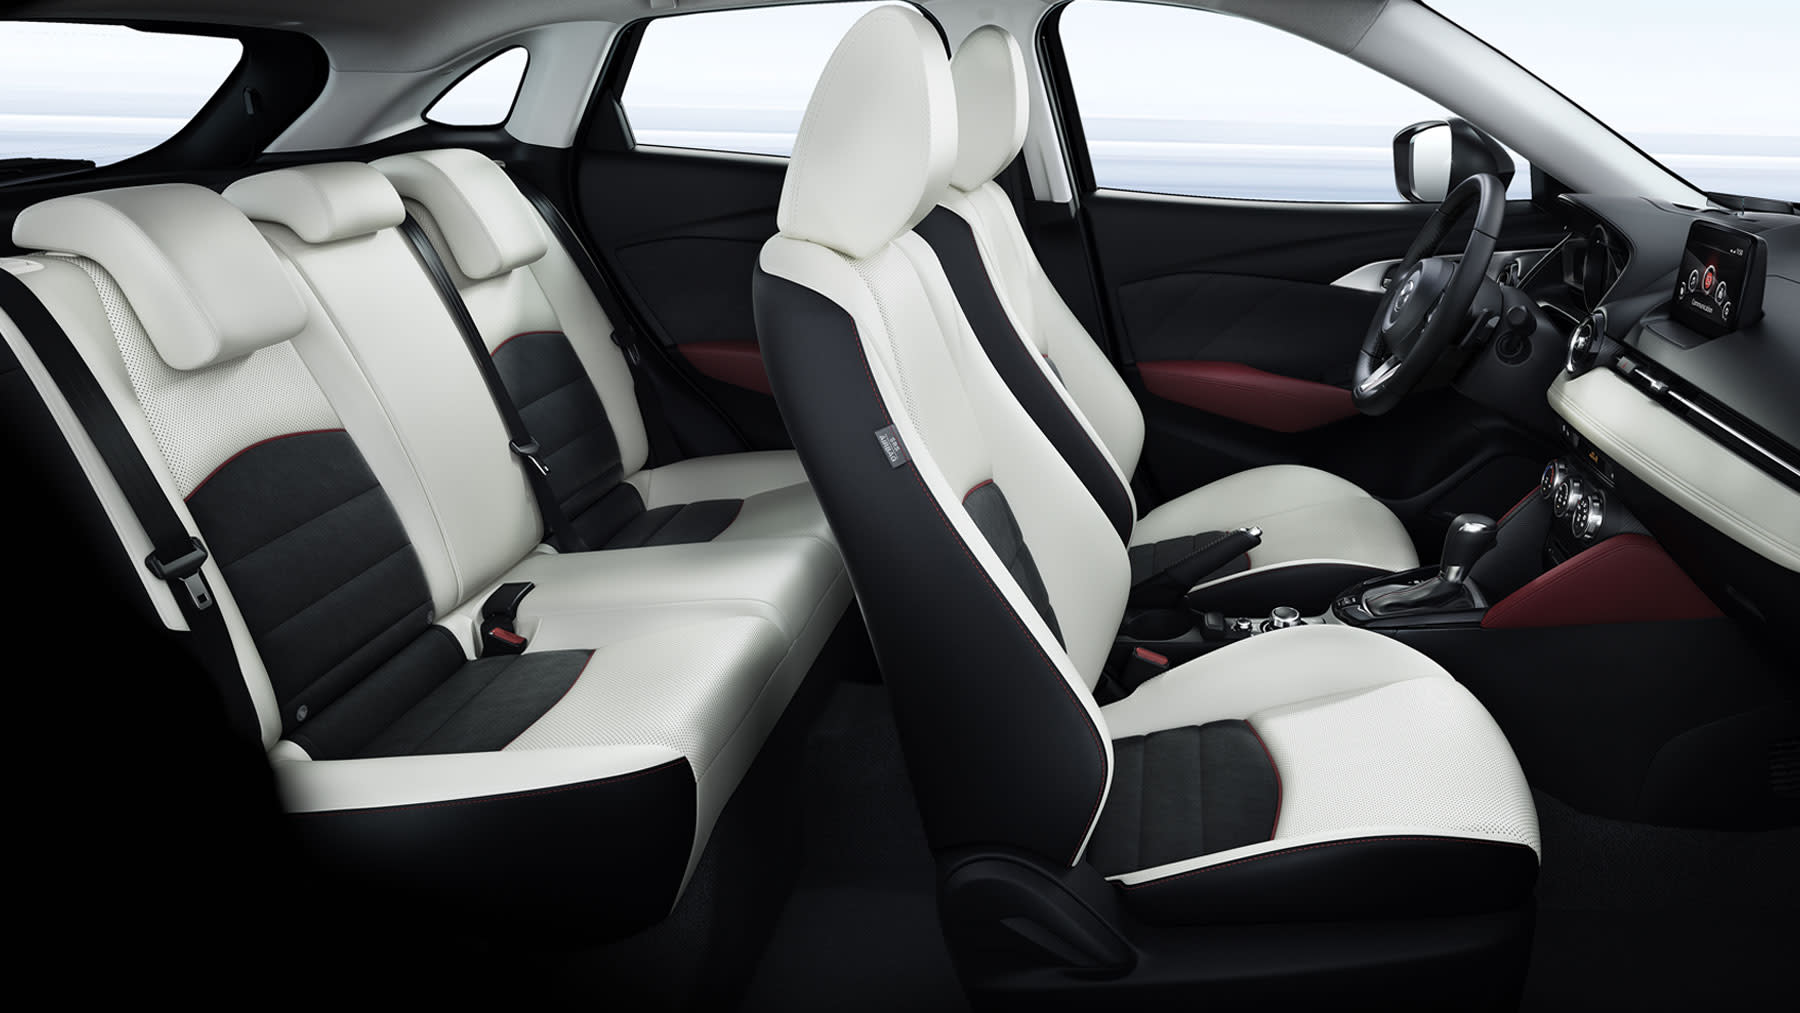 Cabin of the 2018 Mazda CX-3